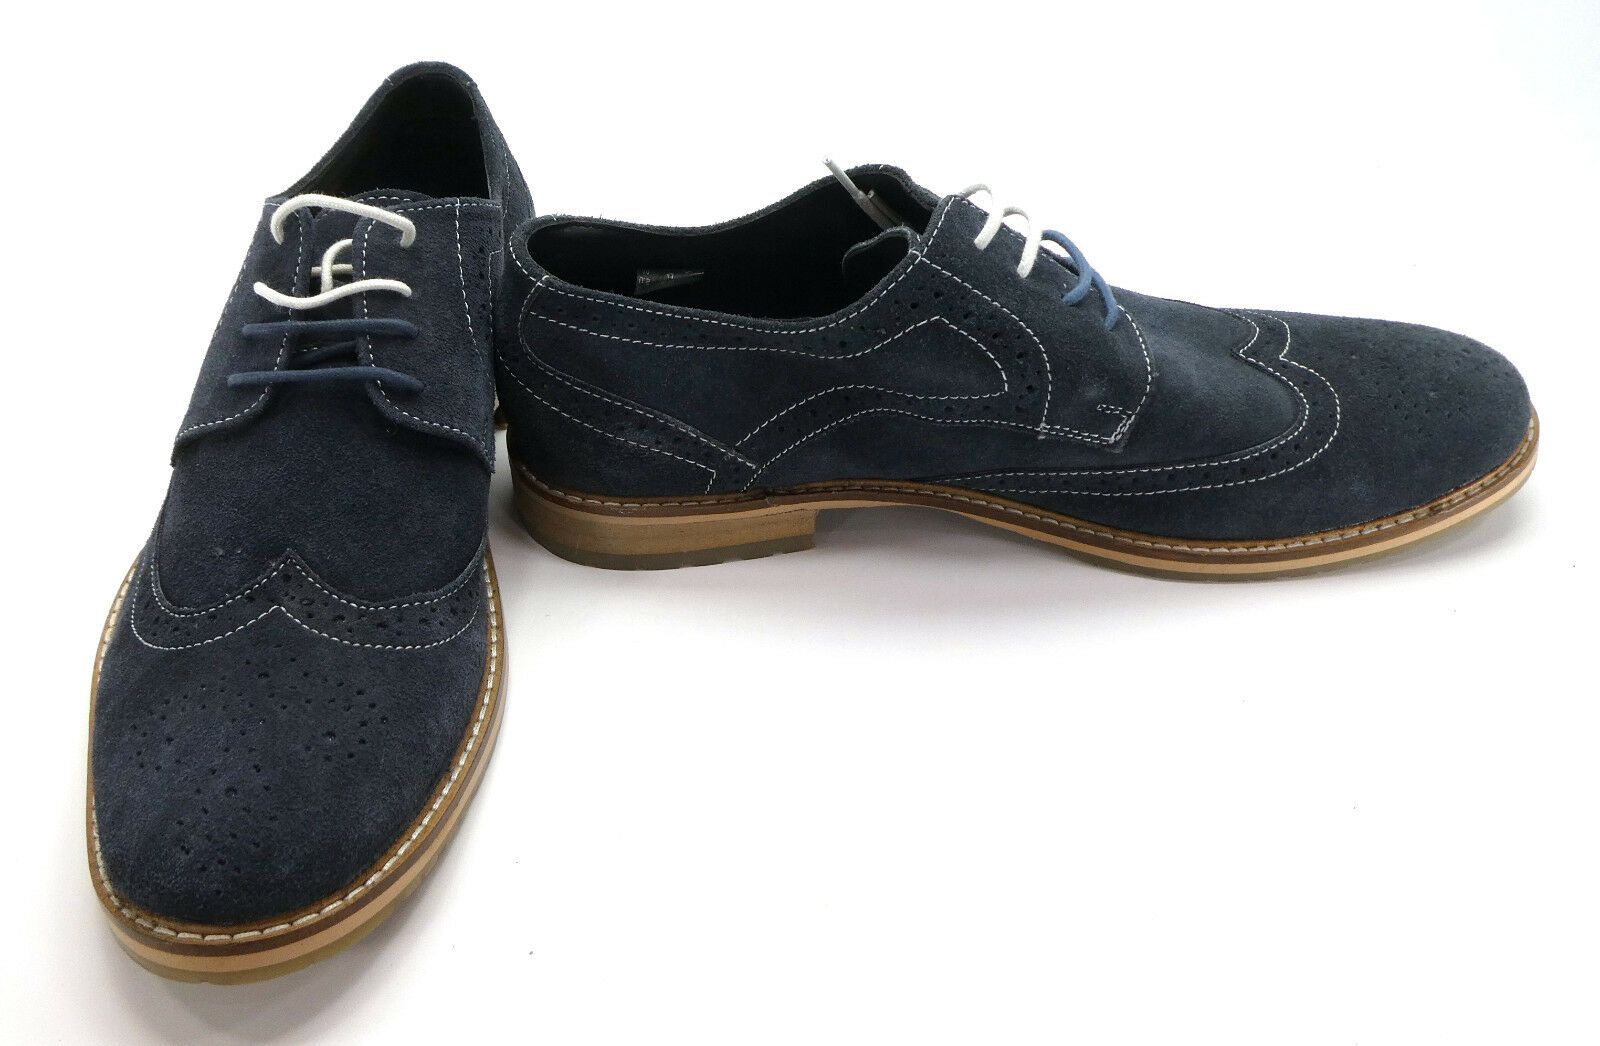 Ben Sherman Dress shoes Bennet Wingtip Suede Oxford Navy bluee Size 8